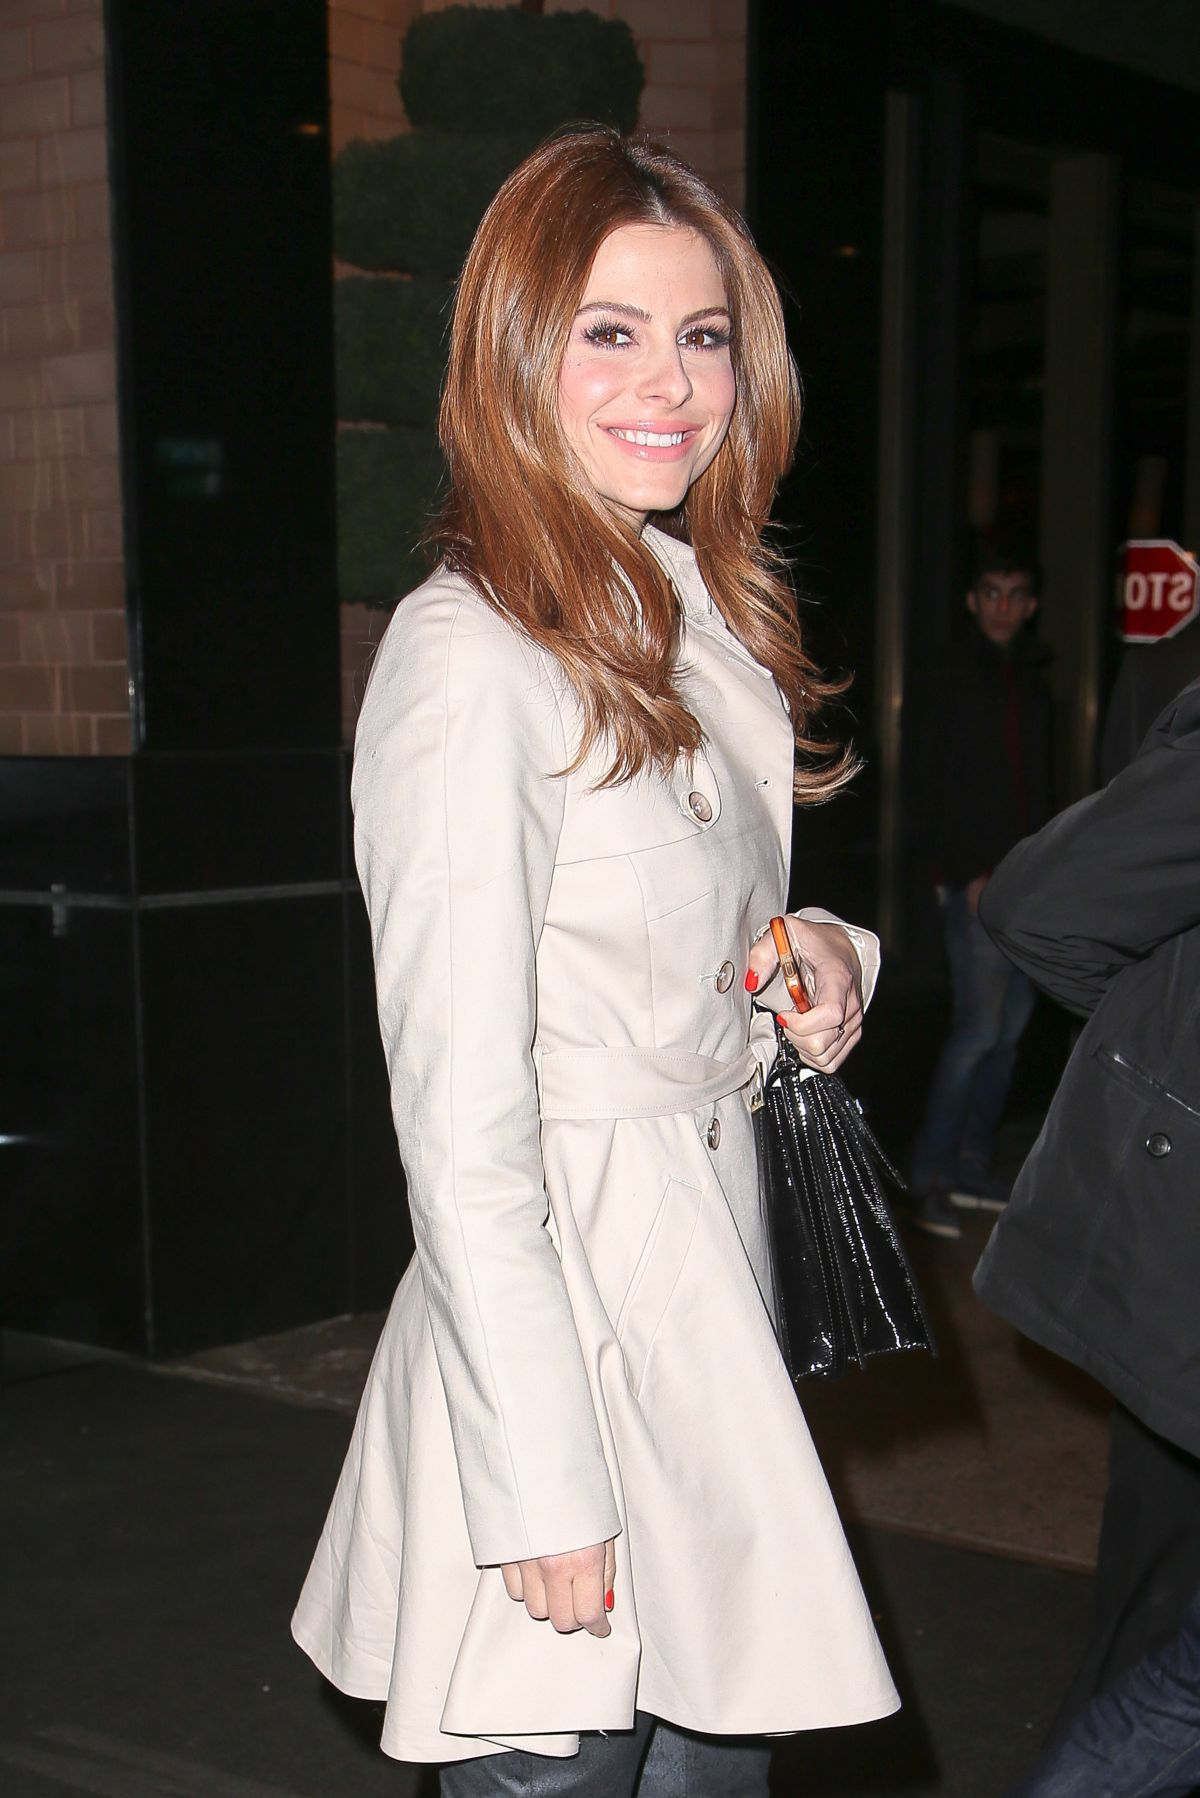 Maria Menounos At A Night Out In New York City